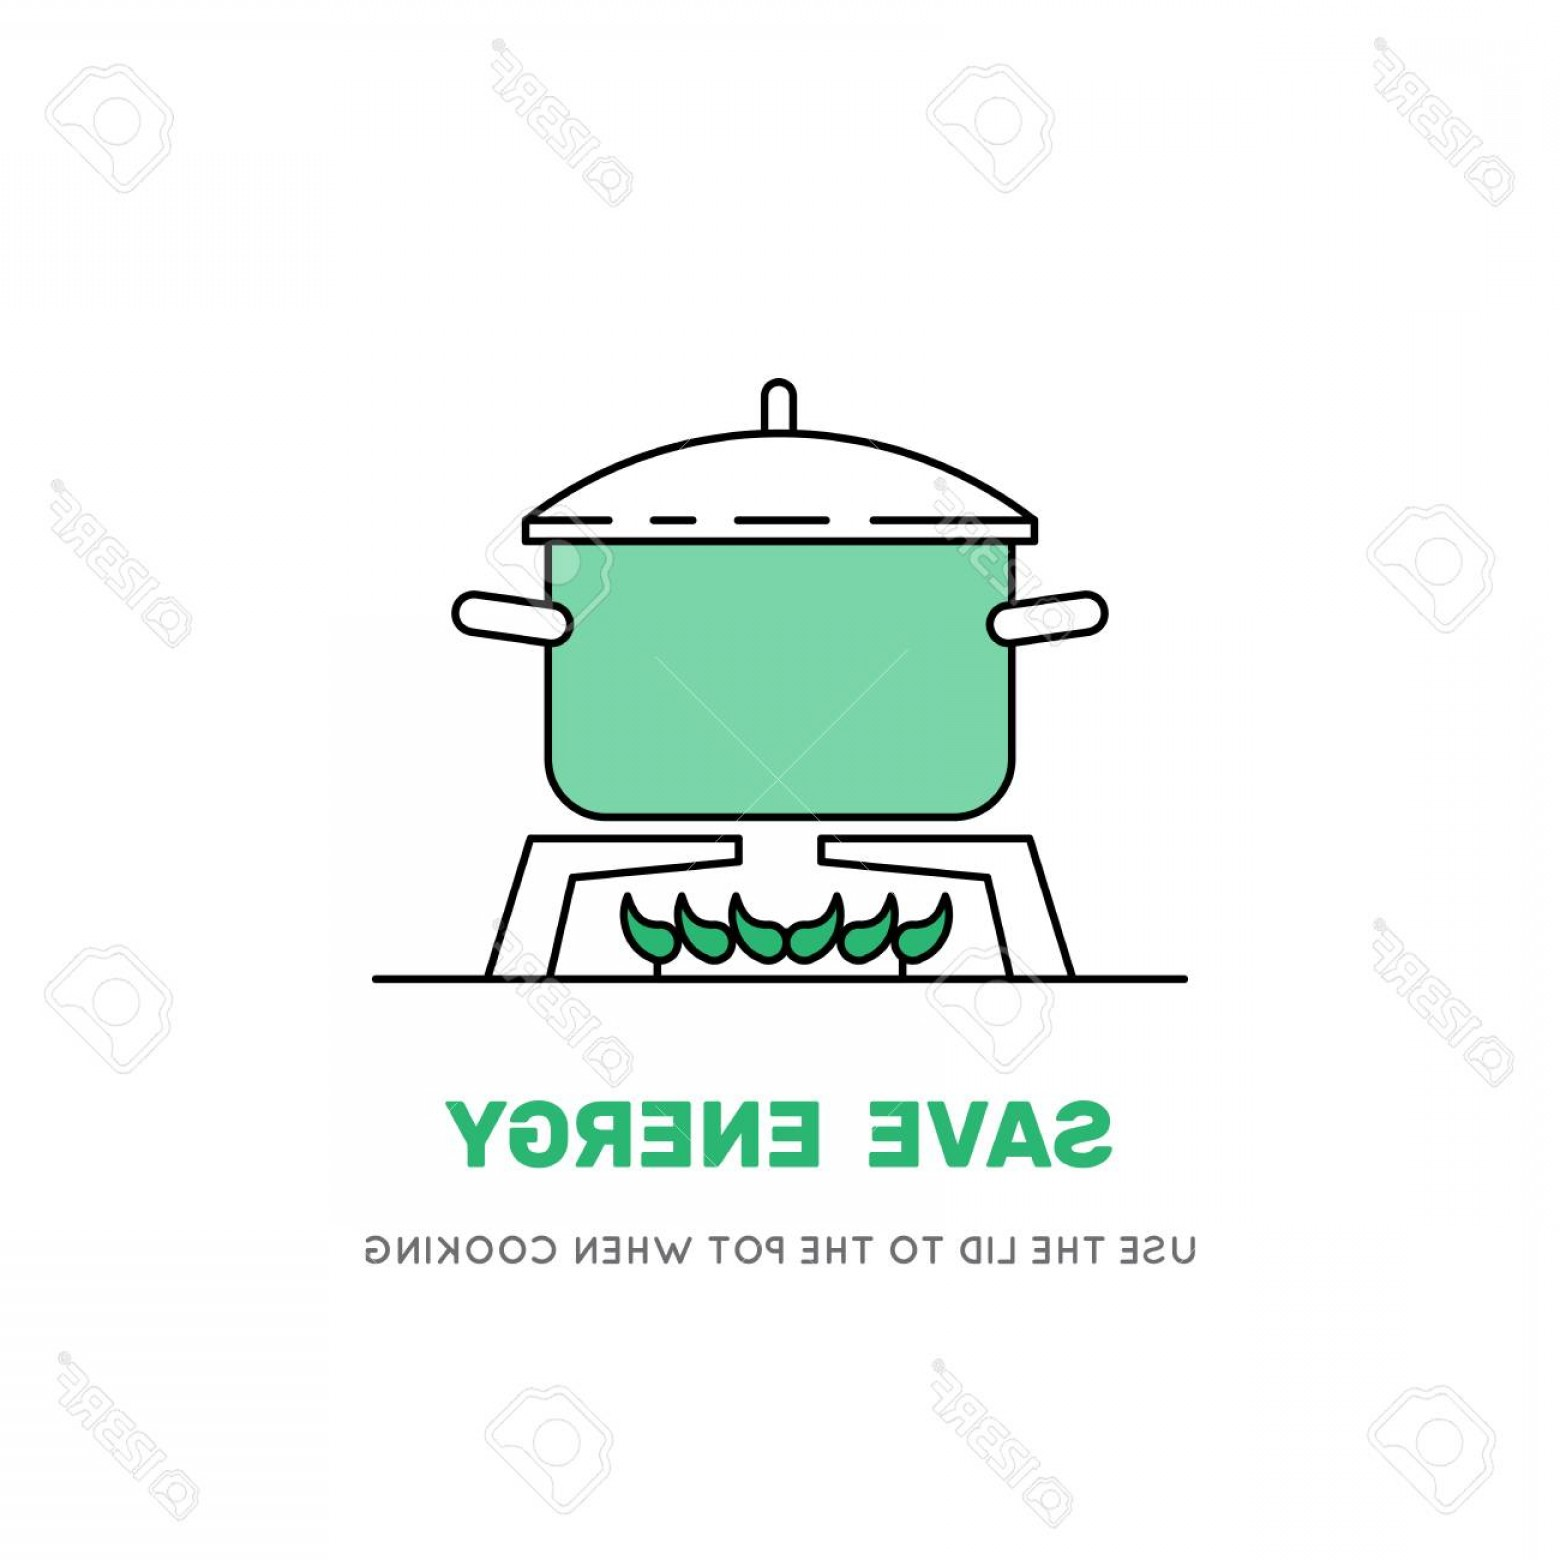 Big Cook With Cooking Pot Vector: Photostock Vector Boiling Water In Pan Green Cooking Pot On Stove Flat Line Design Graphics Elements Vector Illustrati